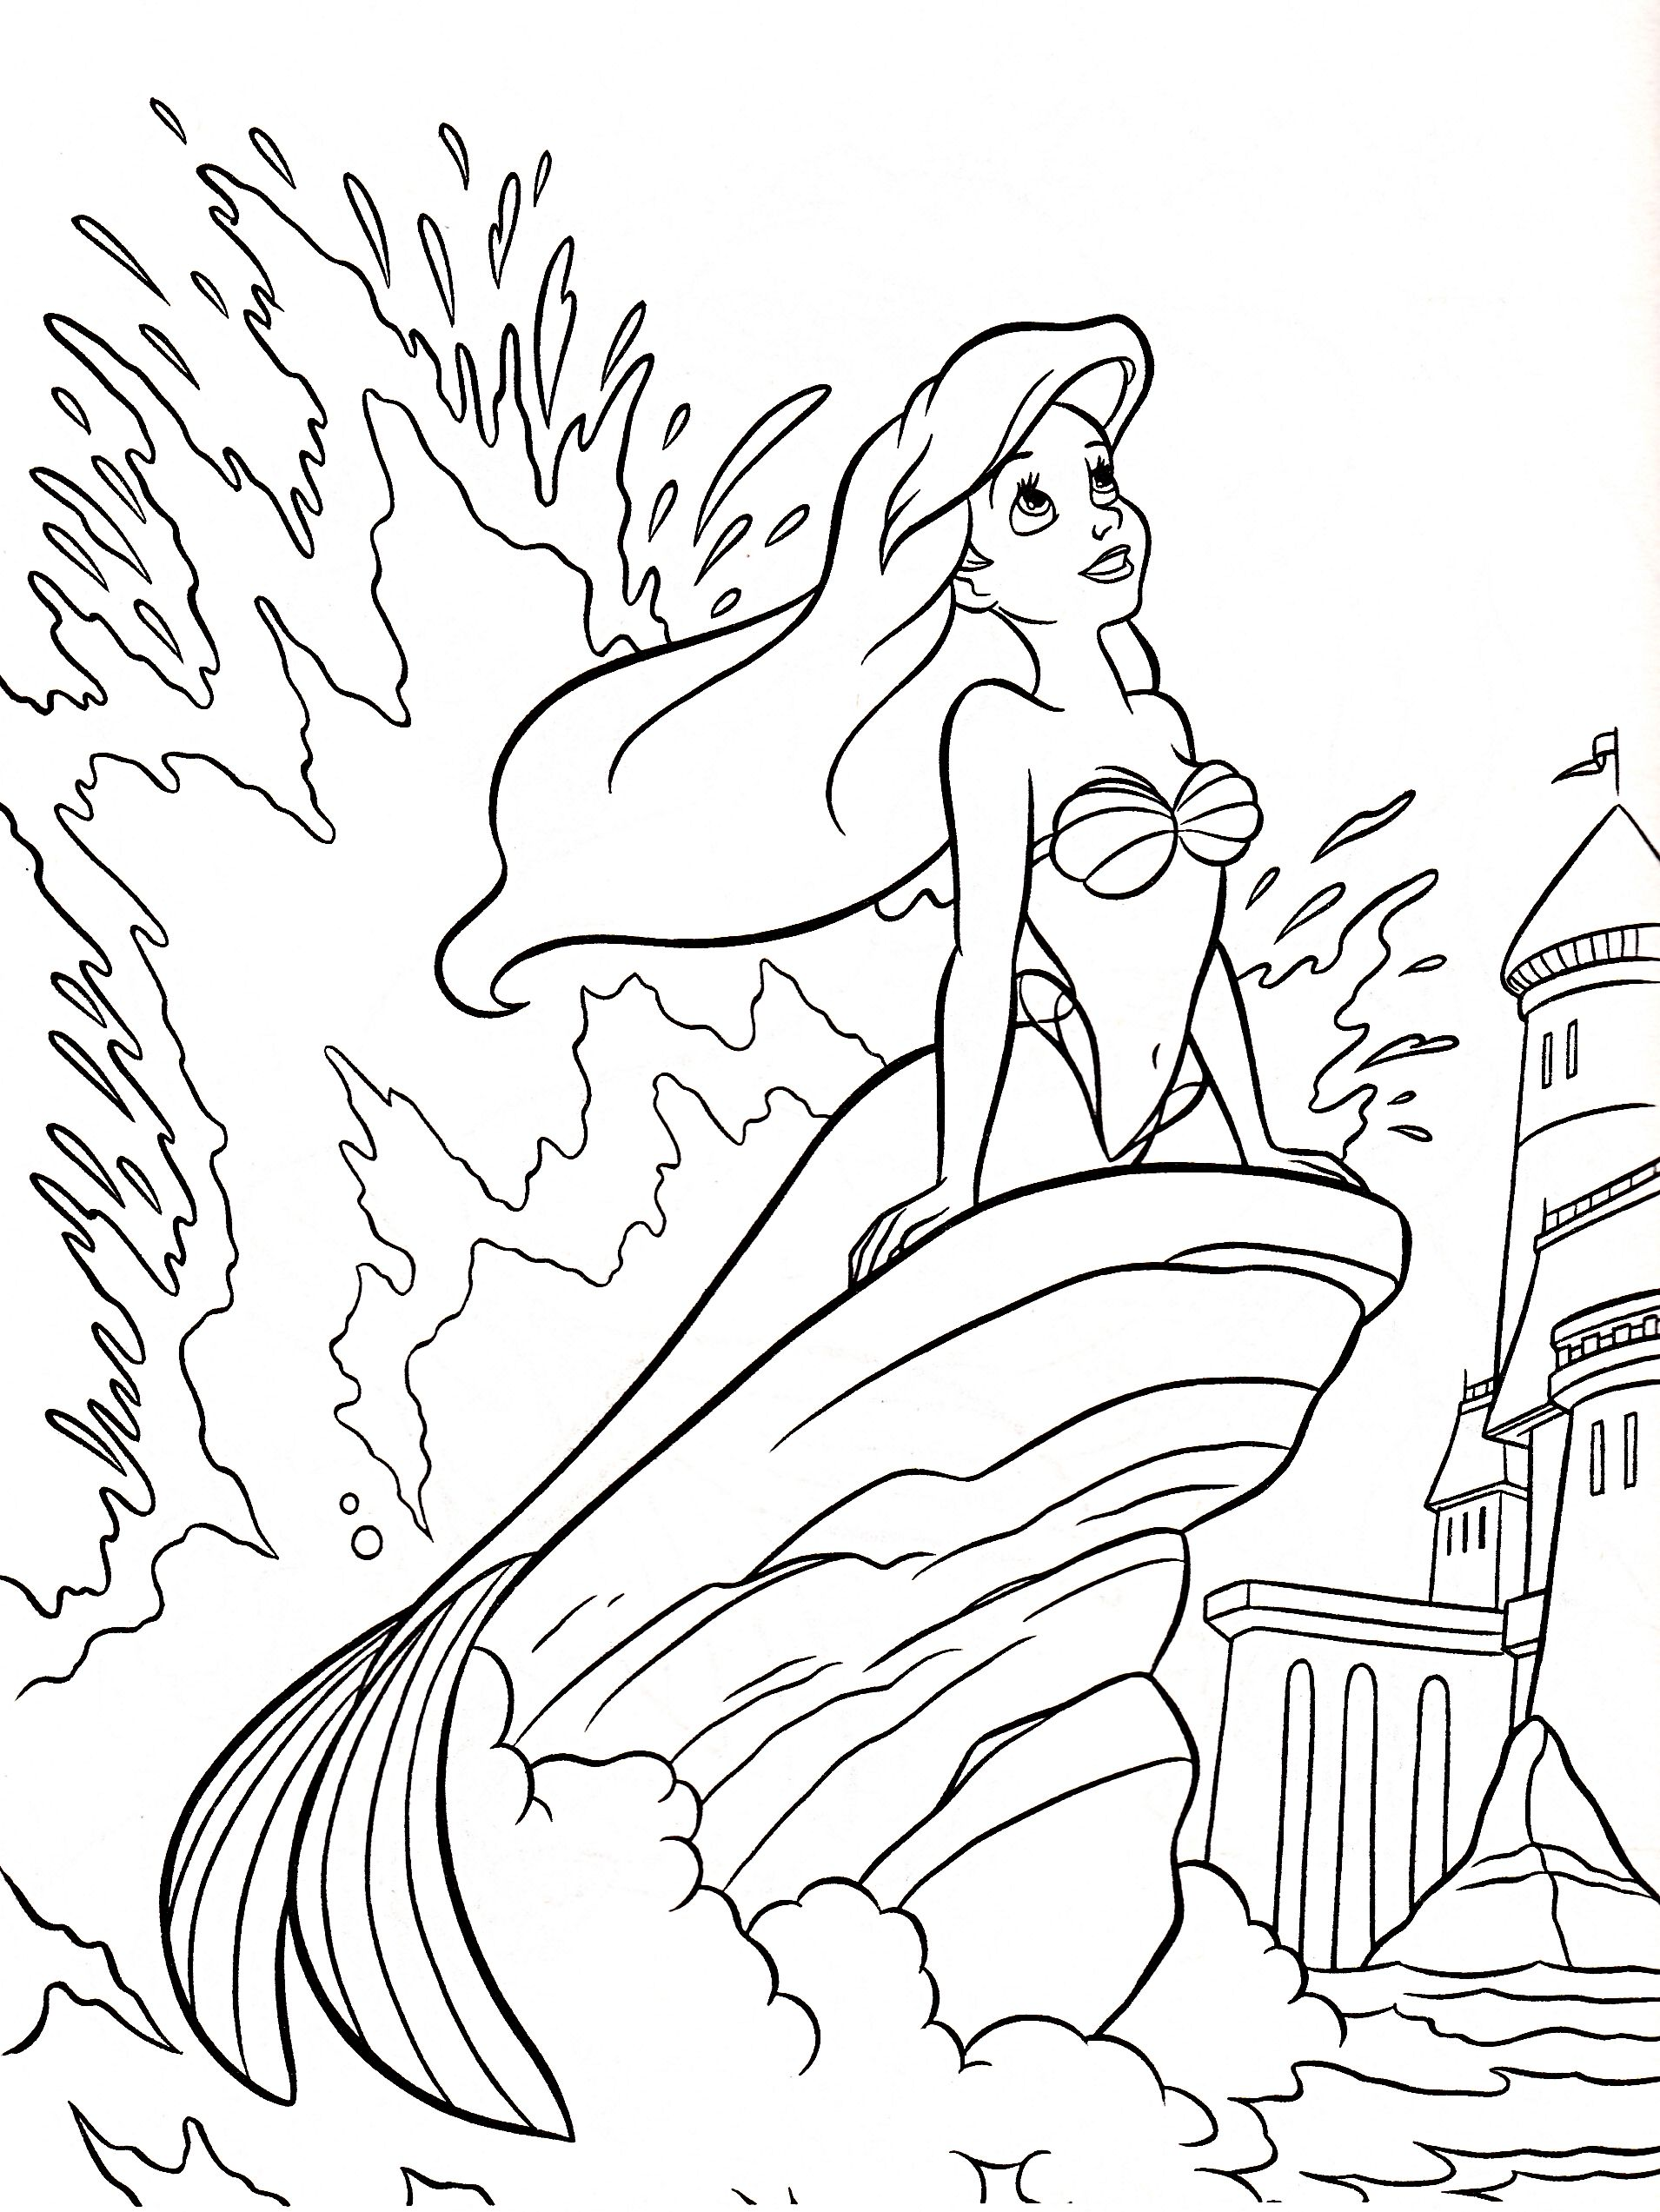 Ariel Coloring Page Ariel Coloring Pages Disney Princess Coloring Pages Princess Coloring Pages